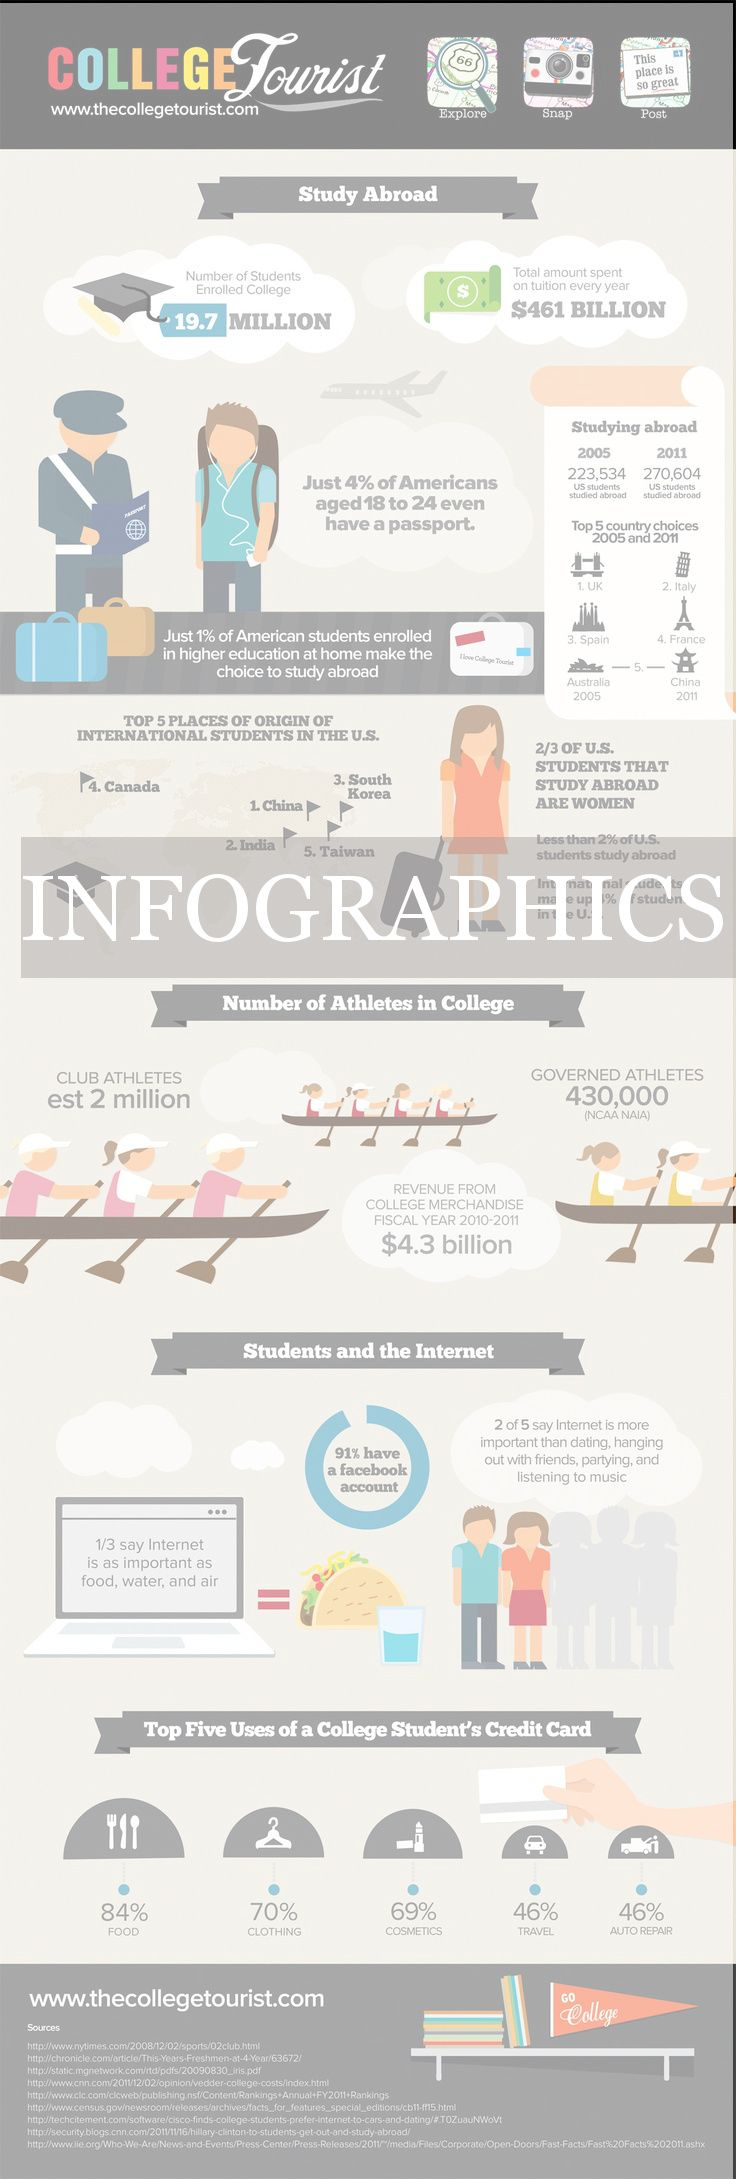 Check out College Tourist's Infographic on Study Abroad